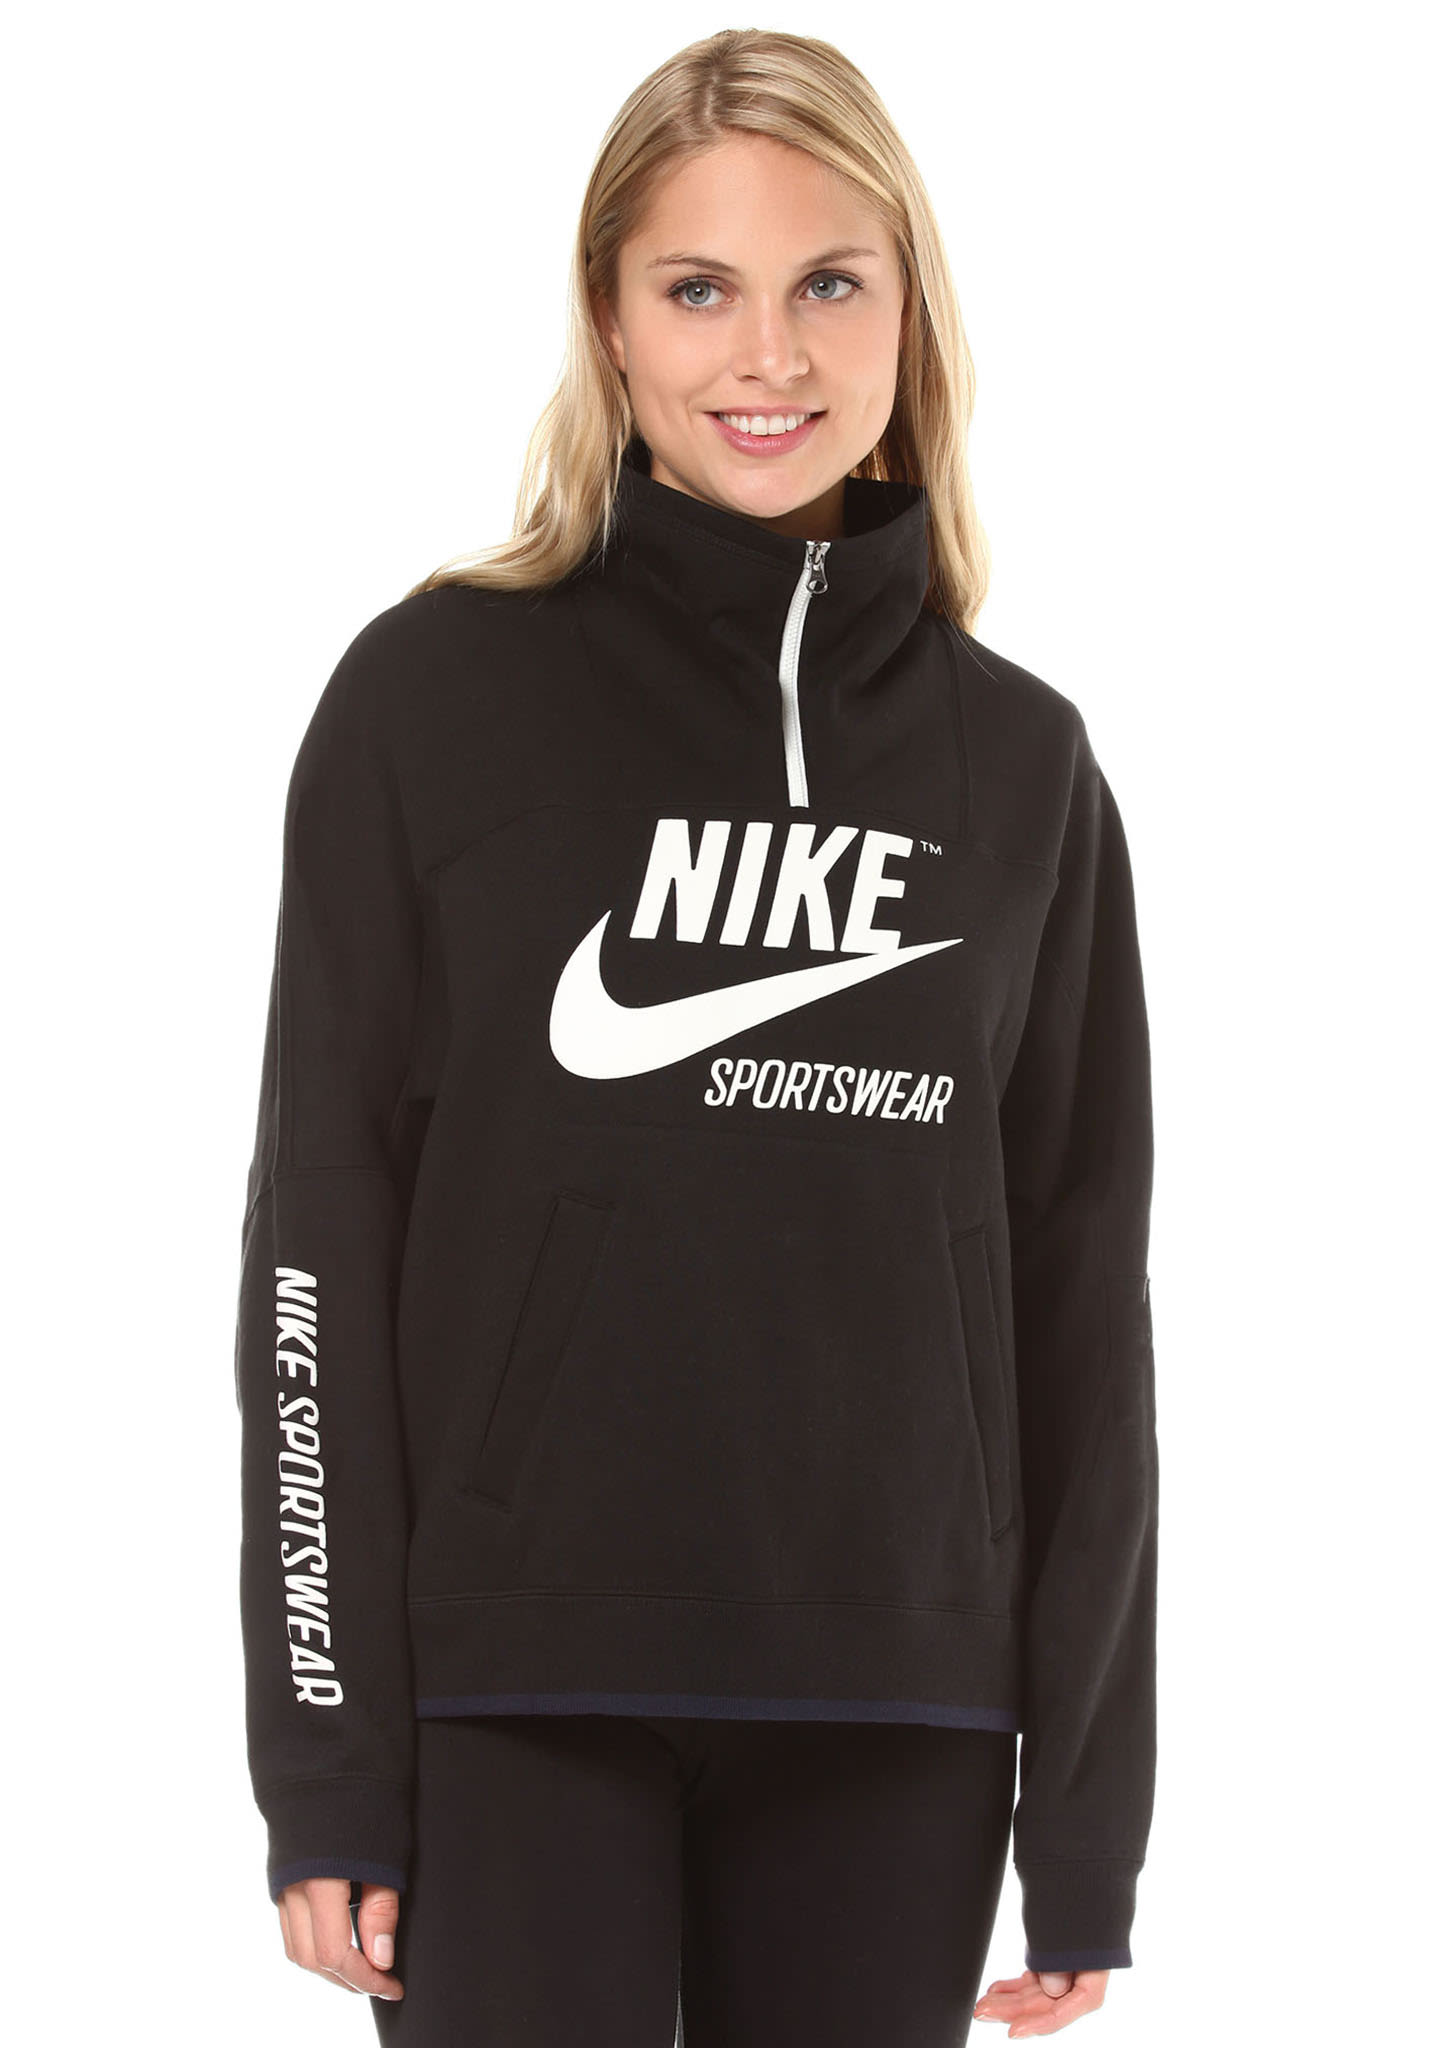 buy popular c0c42 0bef5 NIKE SPORTSWEAR Crew Archive - Sweatshirt for Women - Black - Planet Sports